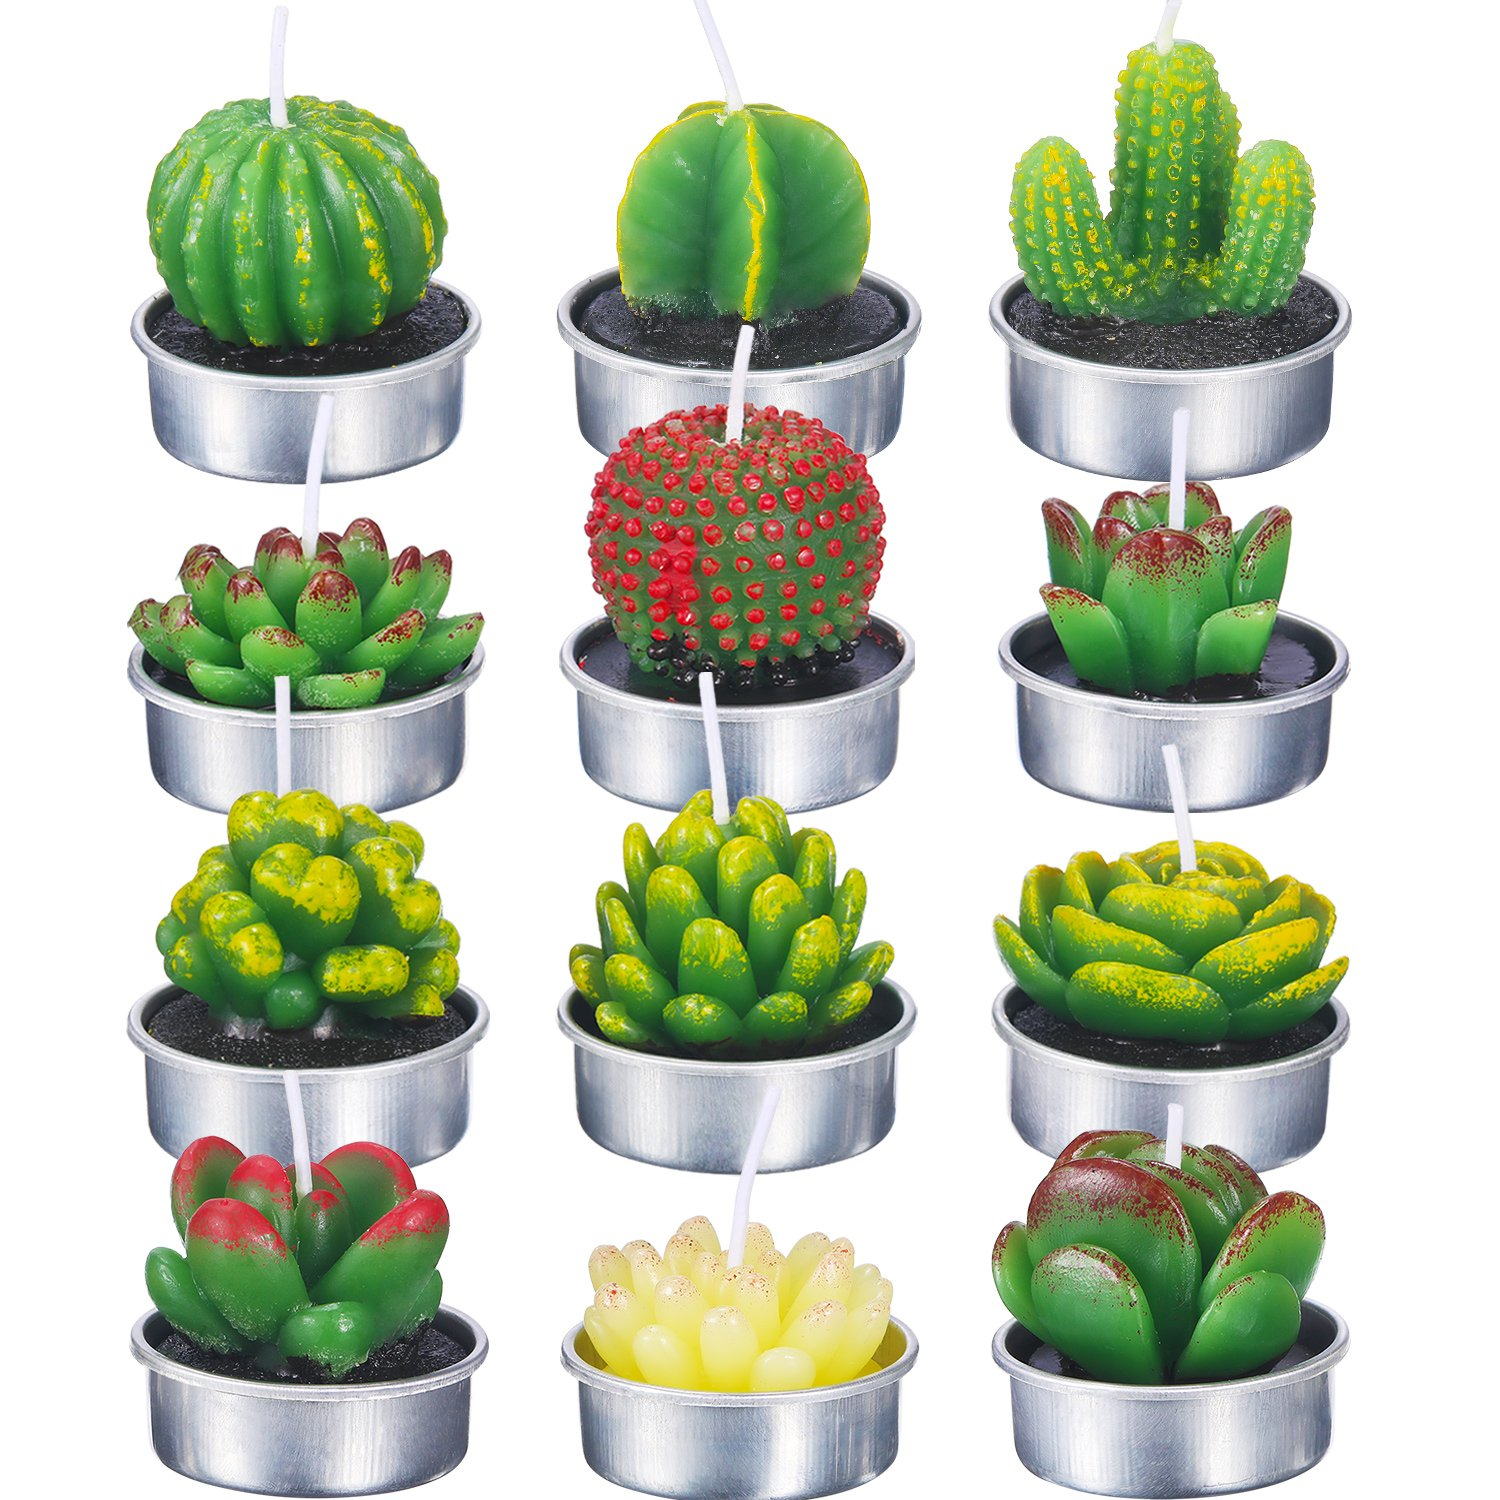 12 Pieces Succulent Cactus Candles Handmade Cactus Tealight Candles for Spa Home Party Wedding Decoration Gifts TecUnite